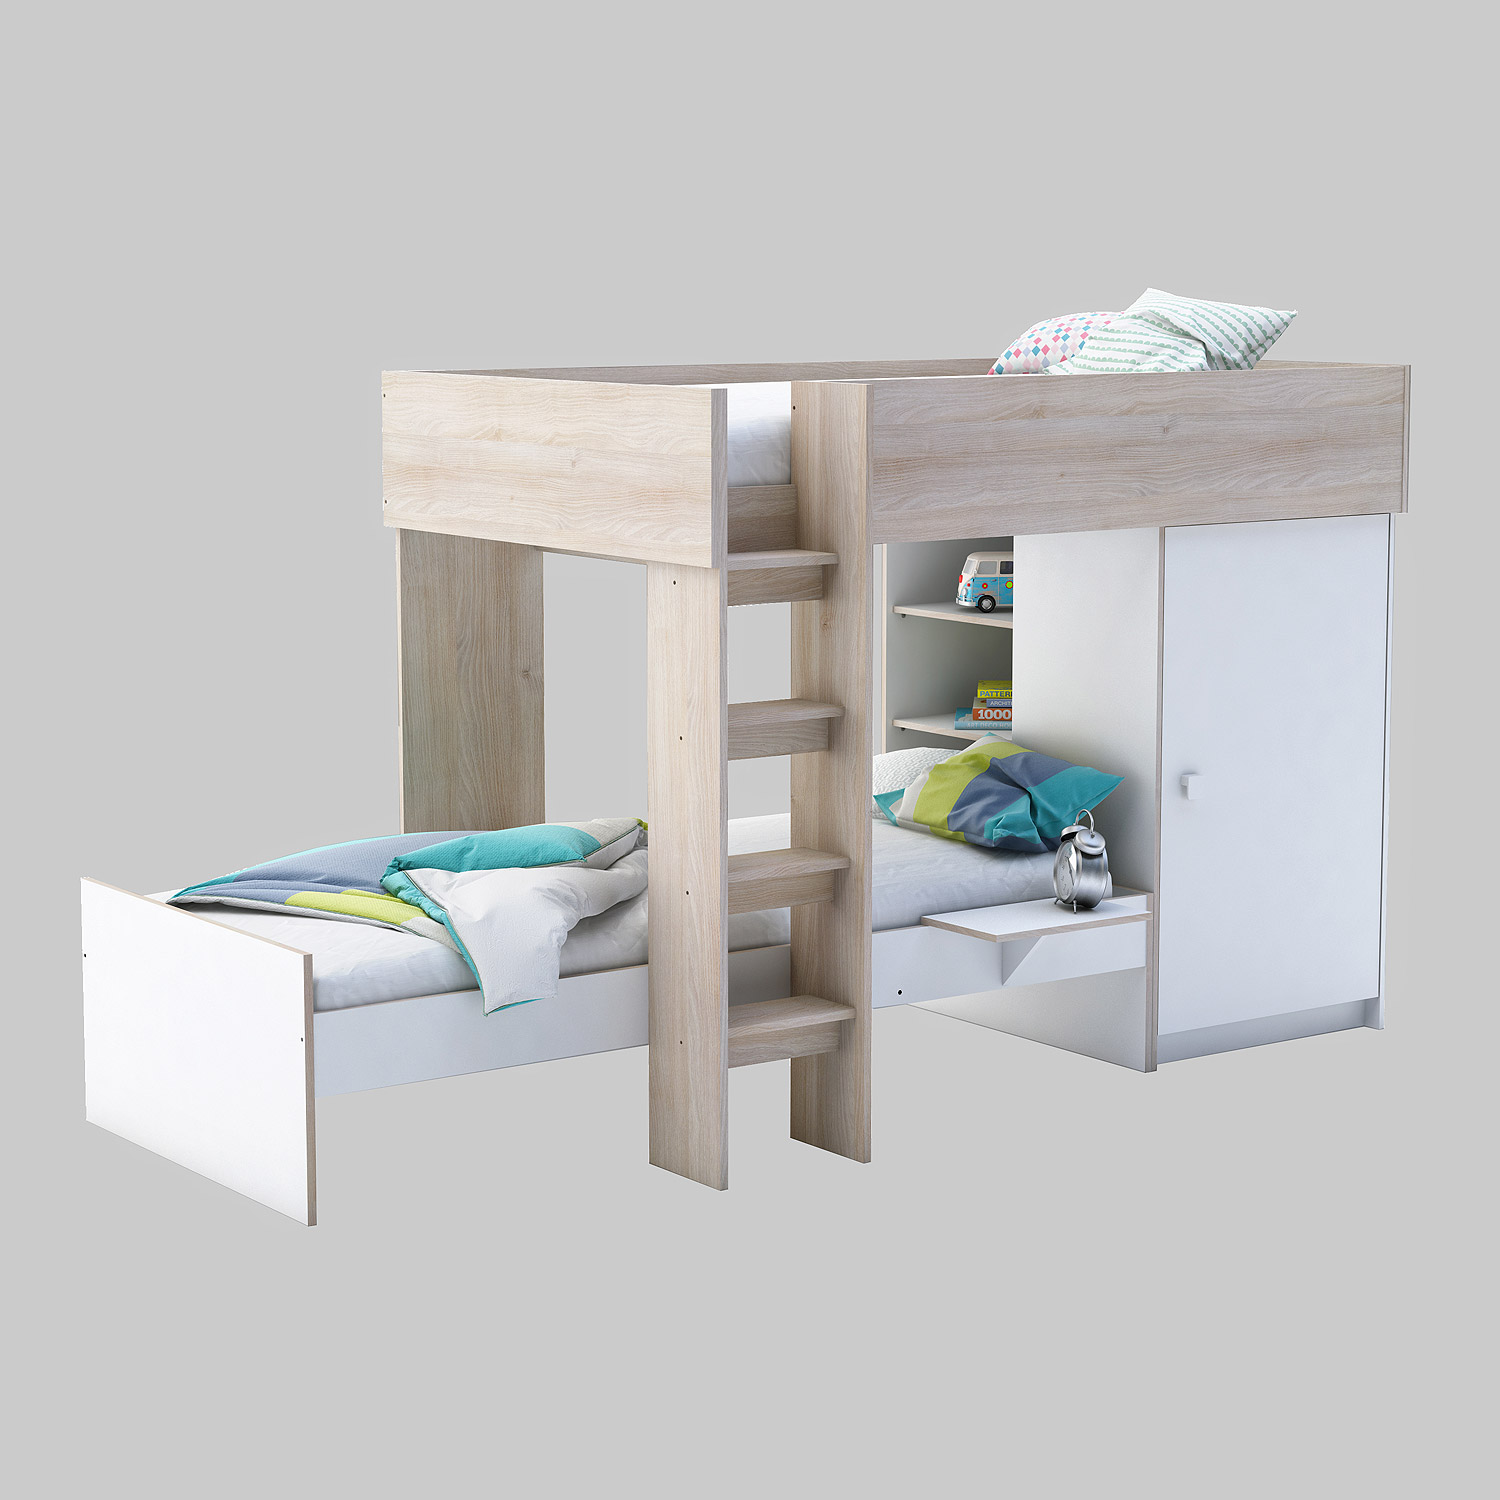 etagenbett treno bett hochbett mit kleiderschrank in wei und akazie 90x200 cm ebay. Black Bedroom Furniture Sets. Home Design Ideas